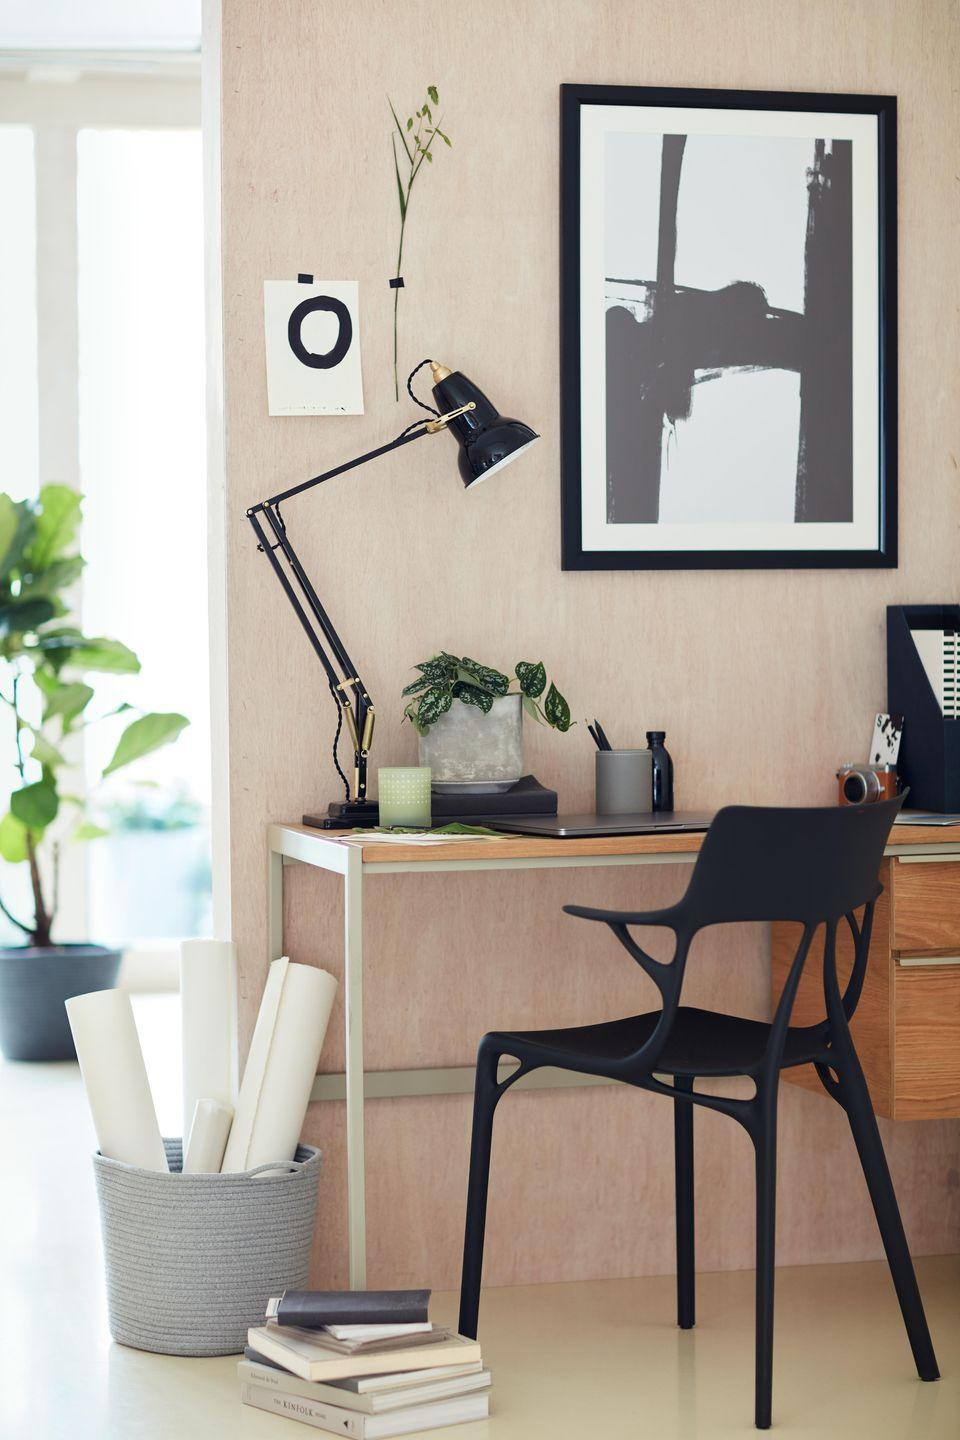 "<p>Over the past year, our homes have become multifunctional places for both work and play. Taking this into account, John Lewis has everything you need to work from home efficiently. You'll find space-saving desks, comfortable chairs, lights and study essentials. </p><p>""This season we've brought function and beauty together<br>to offer our customers a selection of design-led desks<br>that will elevate any home office space,"" David Barrett, Partner & Living and Dining Furniture Buyer, says. <br></p><p><a class=""link rapid-noclick-resp"" href=""https://go.redirectingat.com?id=127X1599956&url=https%3A%2F%2Fwww.johnlewis.com%2Fbrowse%2Fhome-garden%2Fnew-in-home%2F_%2FN-7opk&sref=https%3A%2F%2Fwww.countryliving.com%2Fuk%2Fhomes-interiors%2Finteriors%2Fg35316655%2Fjohn-lewis-homeware-spring-summer%2F"" rel=""nofollow noopener"" target=""_blank"" data-ylk=""slk:SHOP NOW"">SHOP NOW</a></p>"